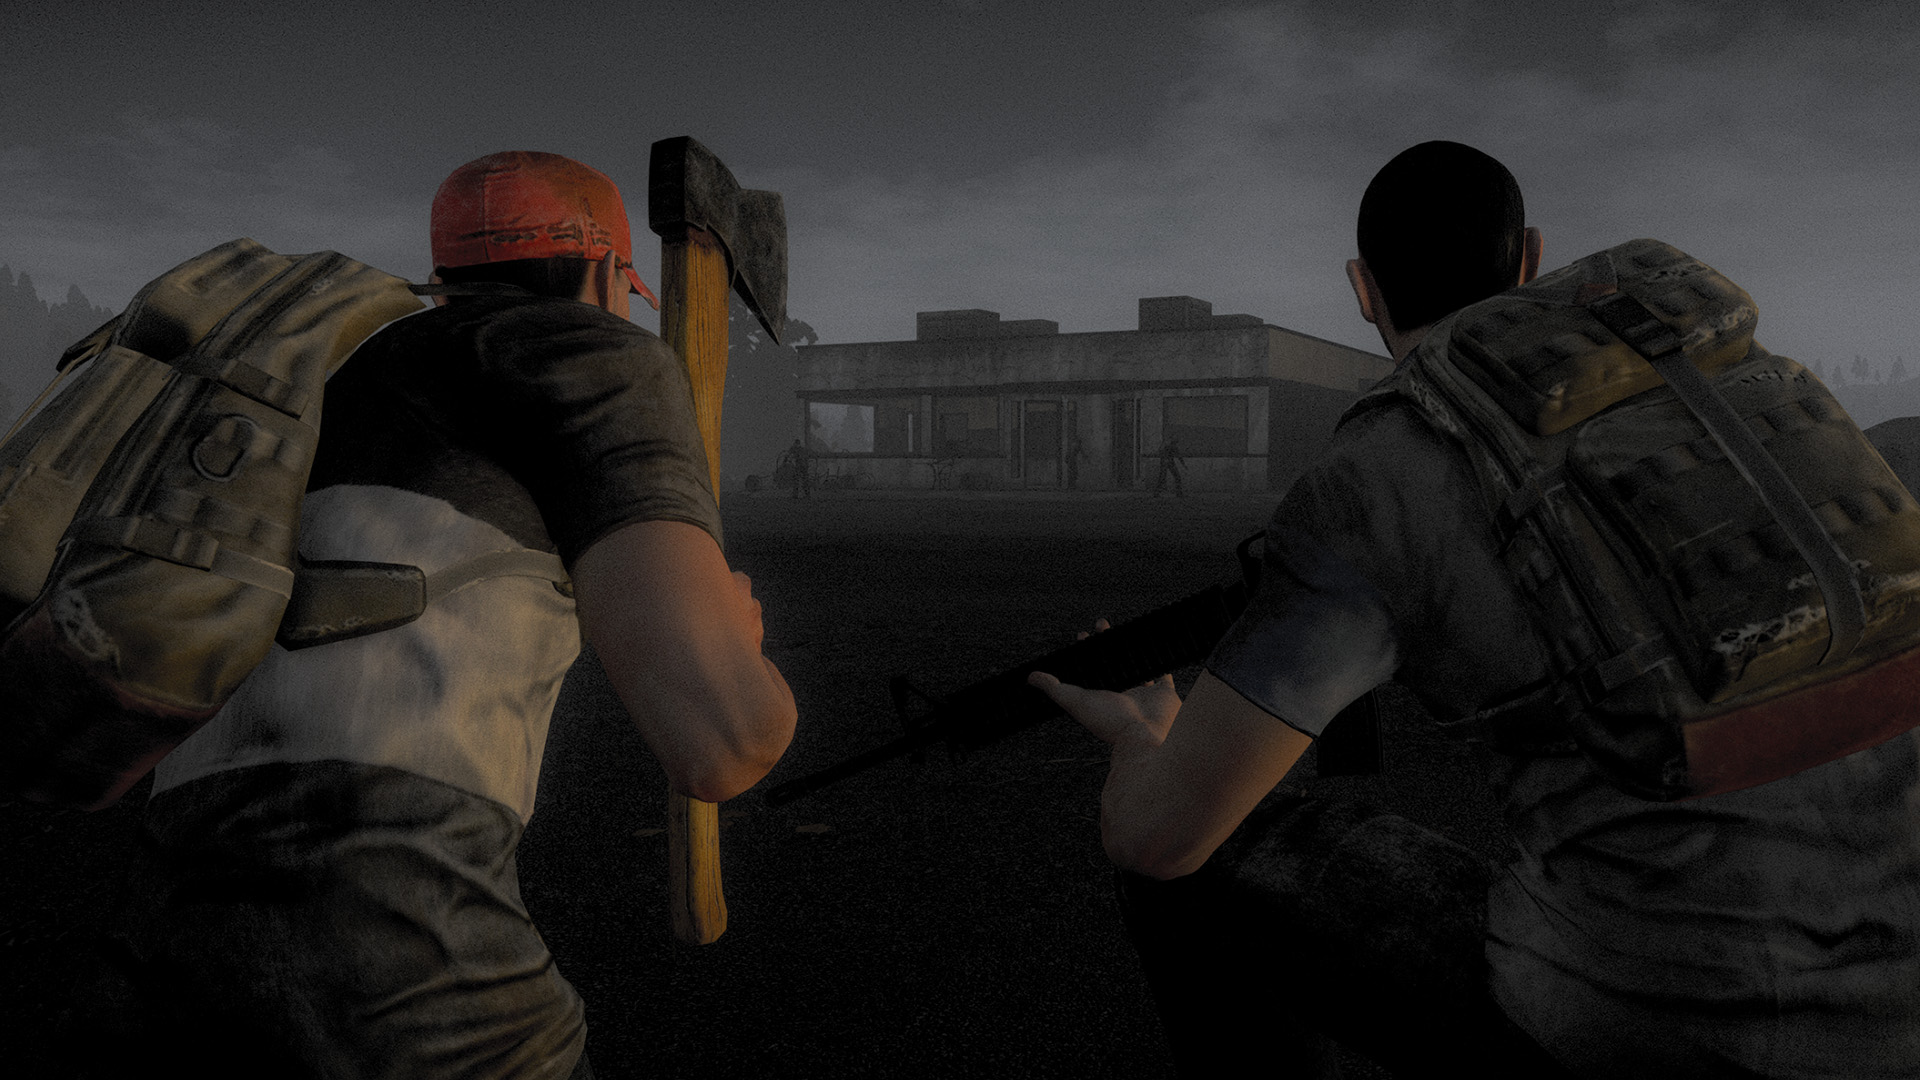 H1Z1 dev Daybreak Game Company has laid off staff